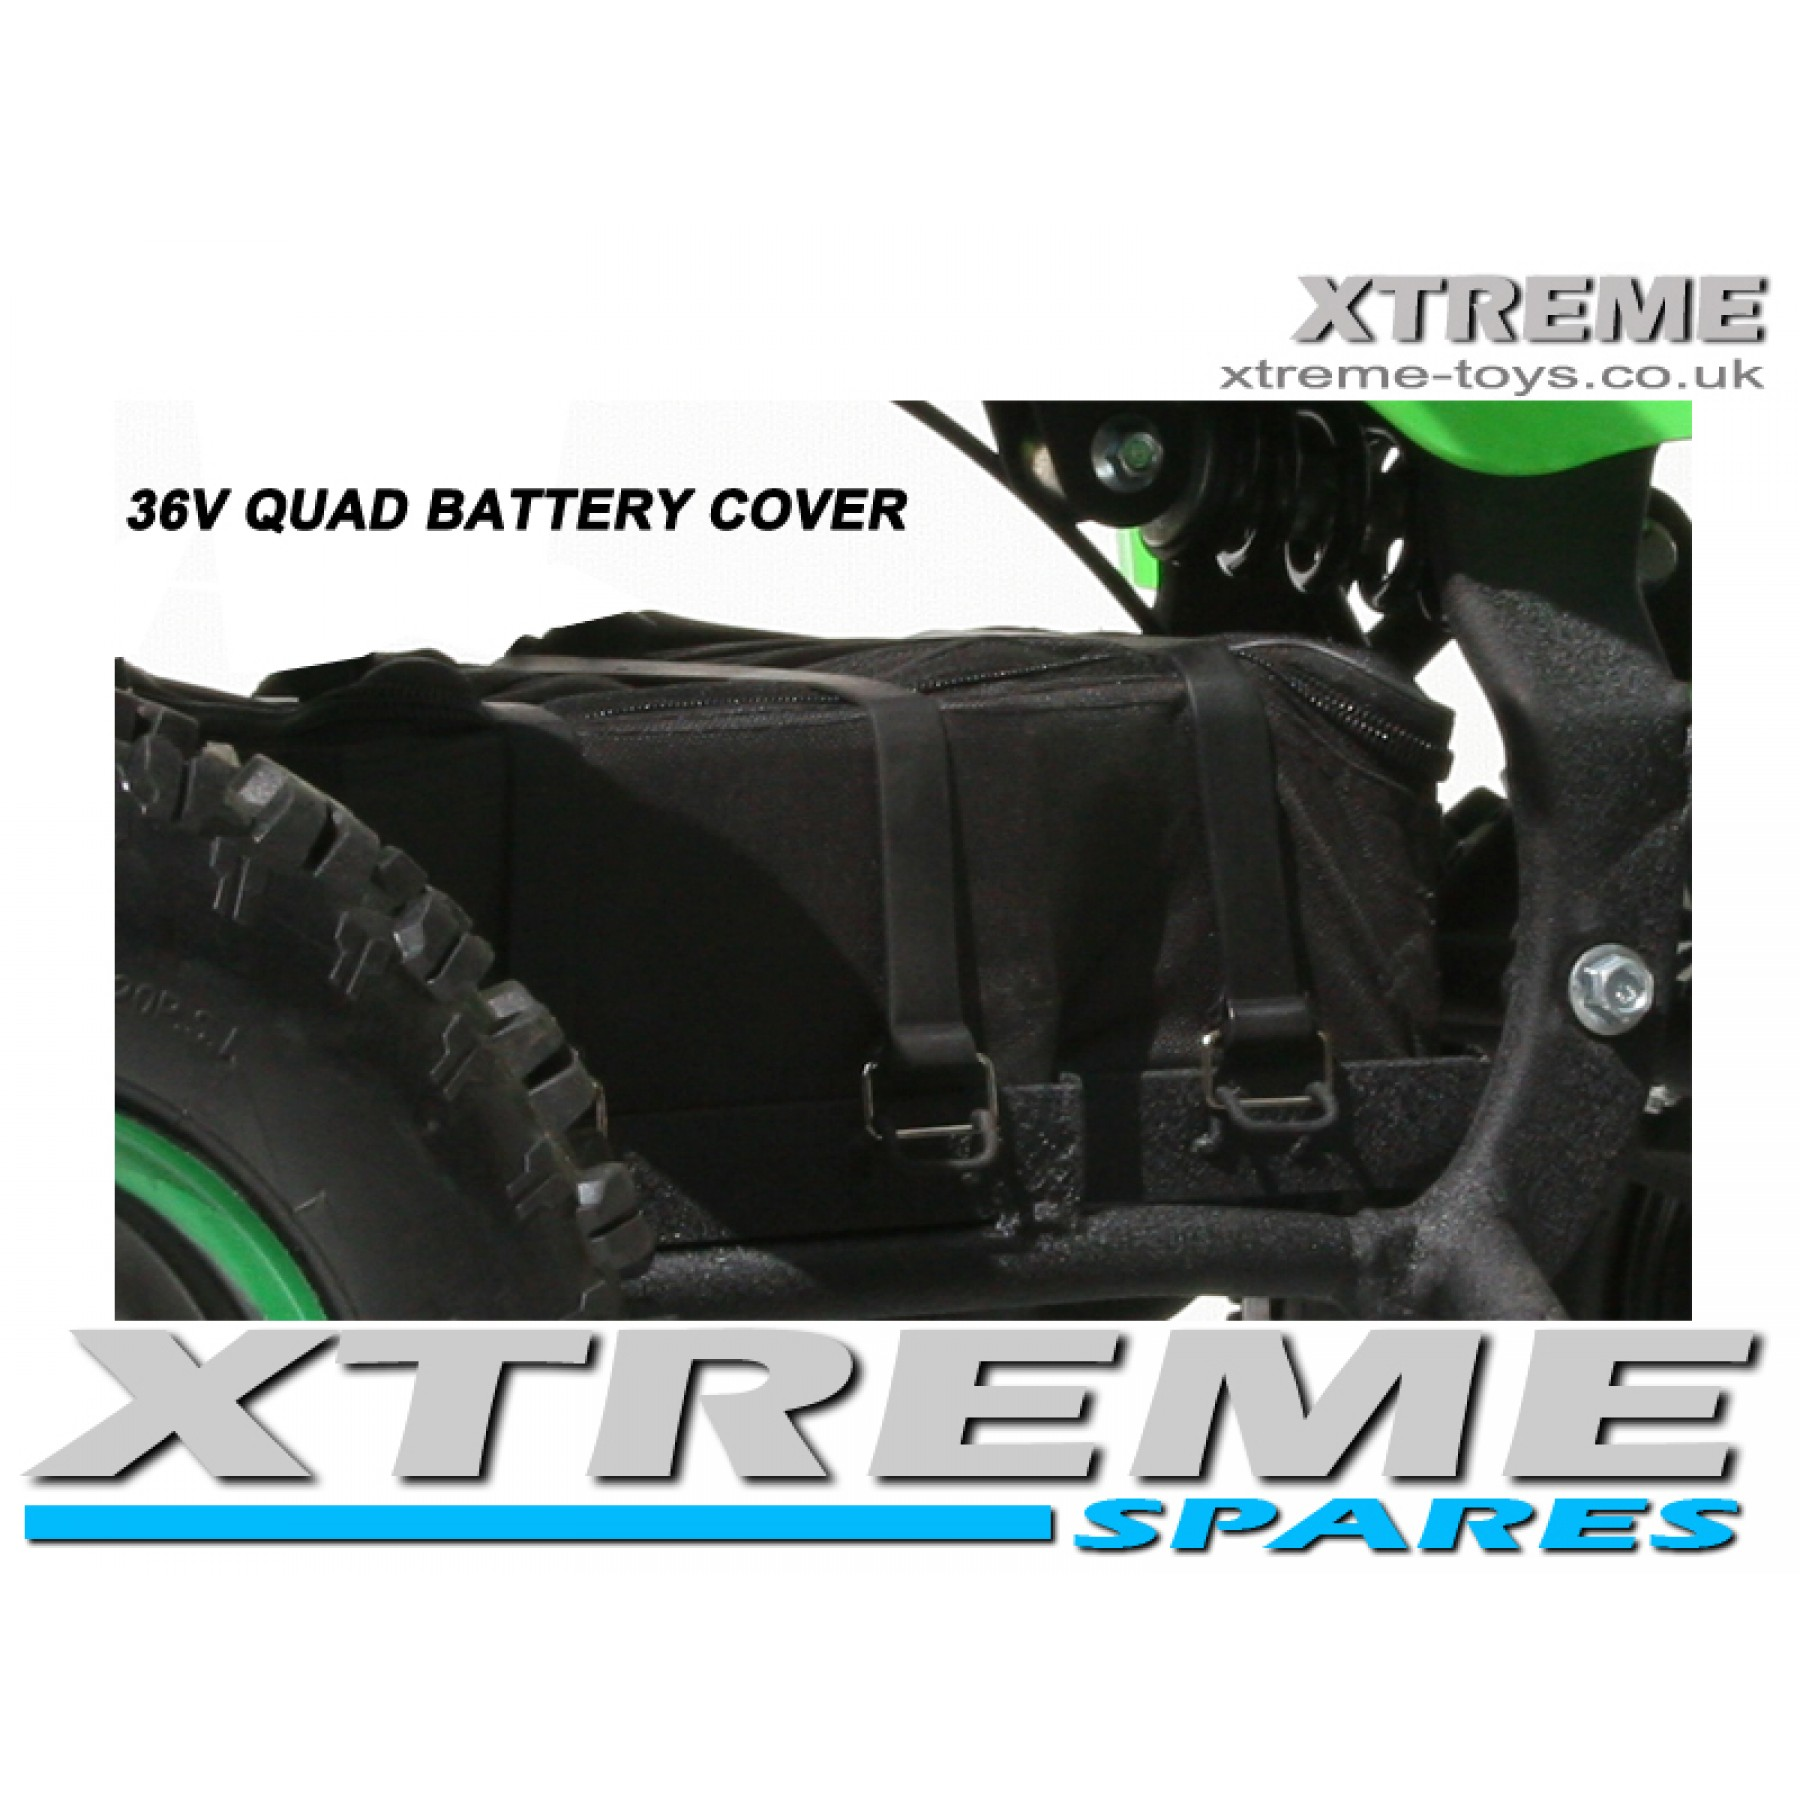 MINI MONSTER QUAD BIKE REPLACEMENT BATTERY COVER CASE